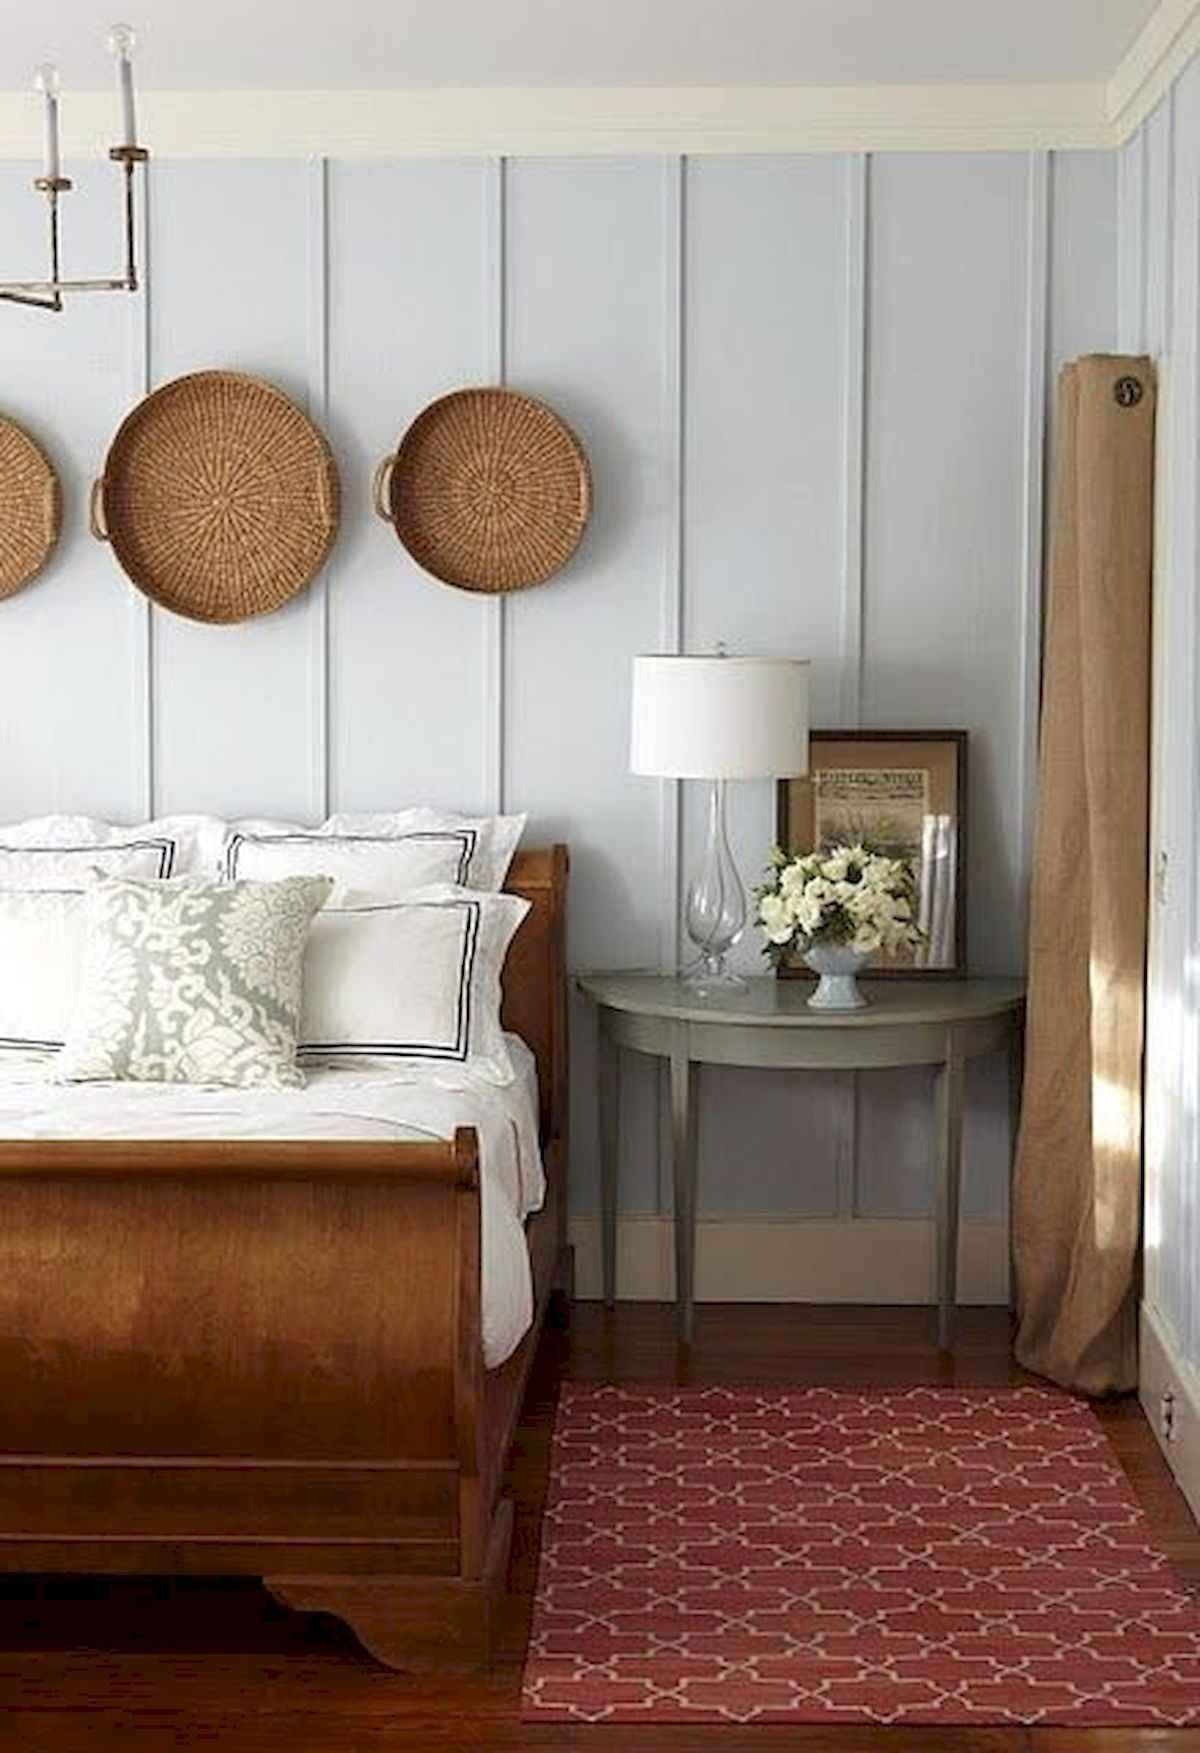 70 Farmhouse Wall Paneling Design Ideas For Living Room Bathroom Kitchen And Bedroom Bedroom Wall Decor Above Bed Kitchens And Bedrooms Wall Decor Bedroom